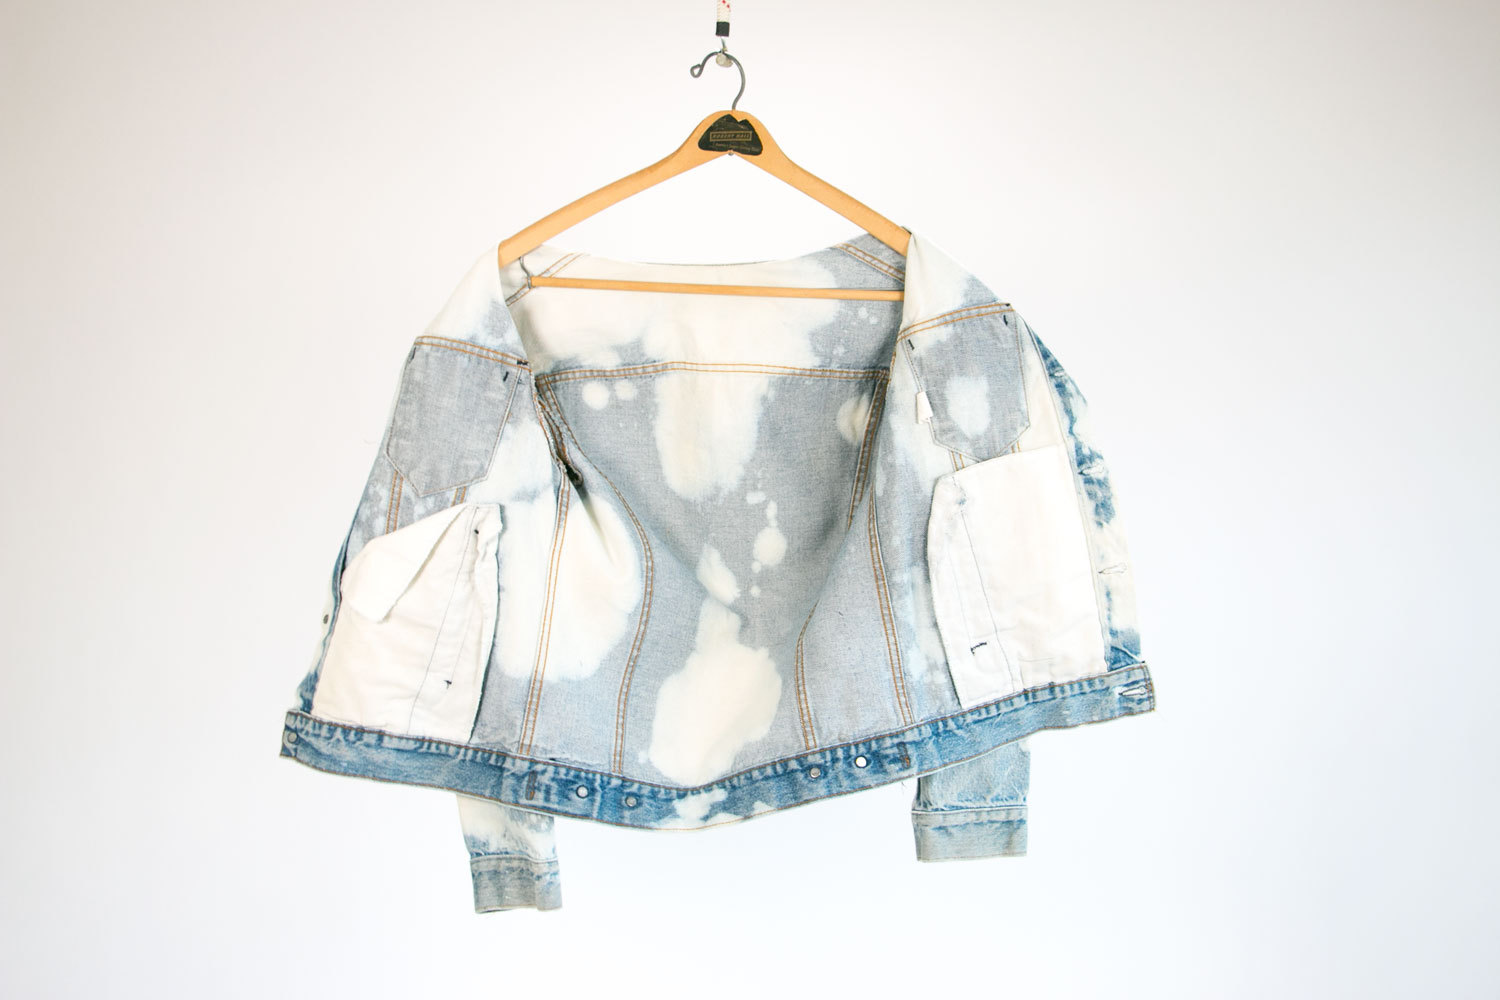 Vintage 1980's Levi's Denim Jacket // Bleached! // Men's Medium to Small, Women's Medium to Large // Retro // Rocker // Hipster